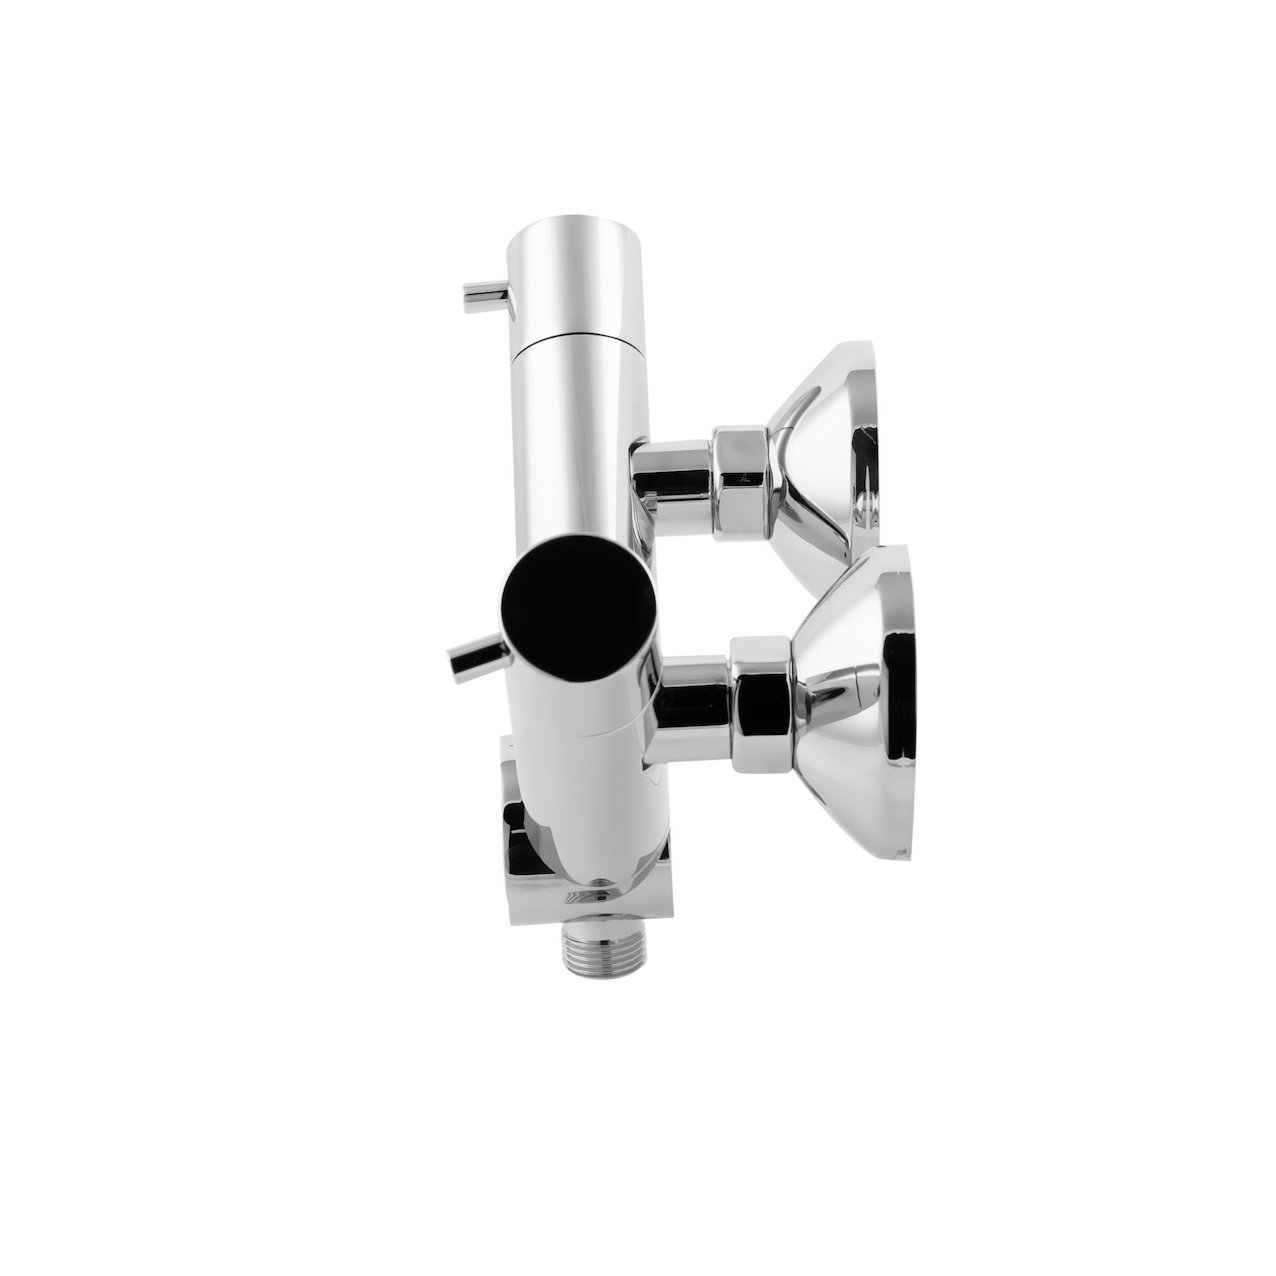 Wall shower mixer Voyager - 360 - 0